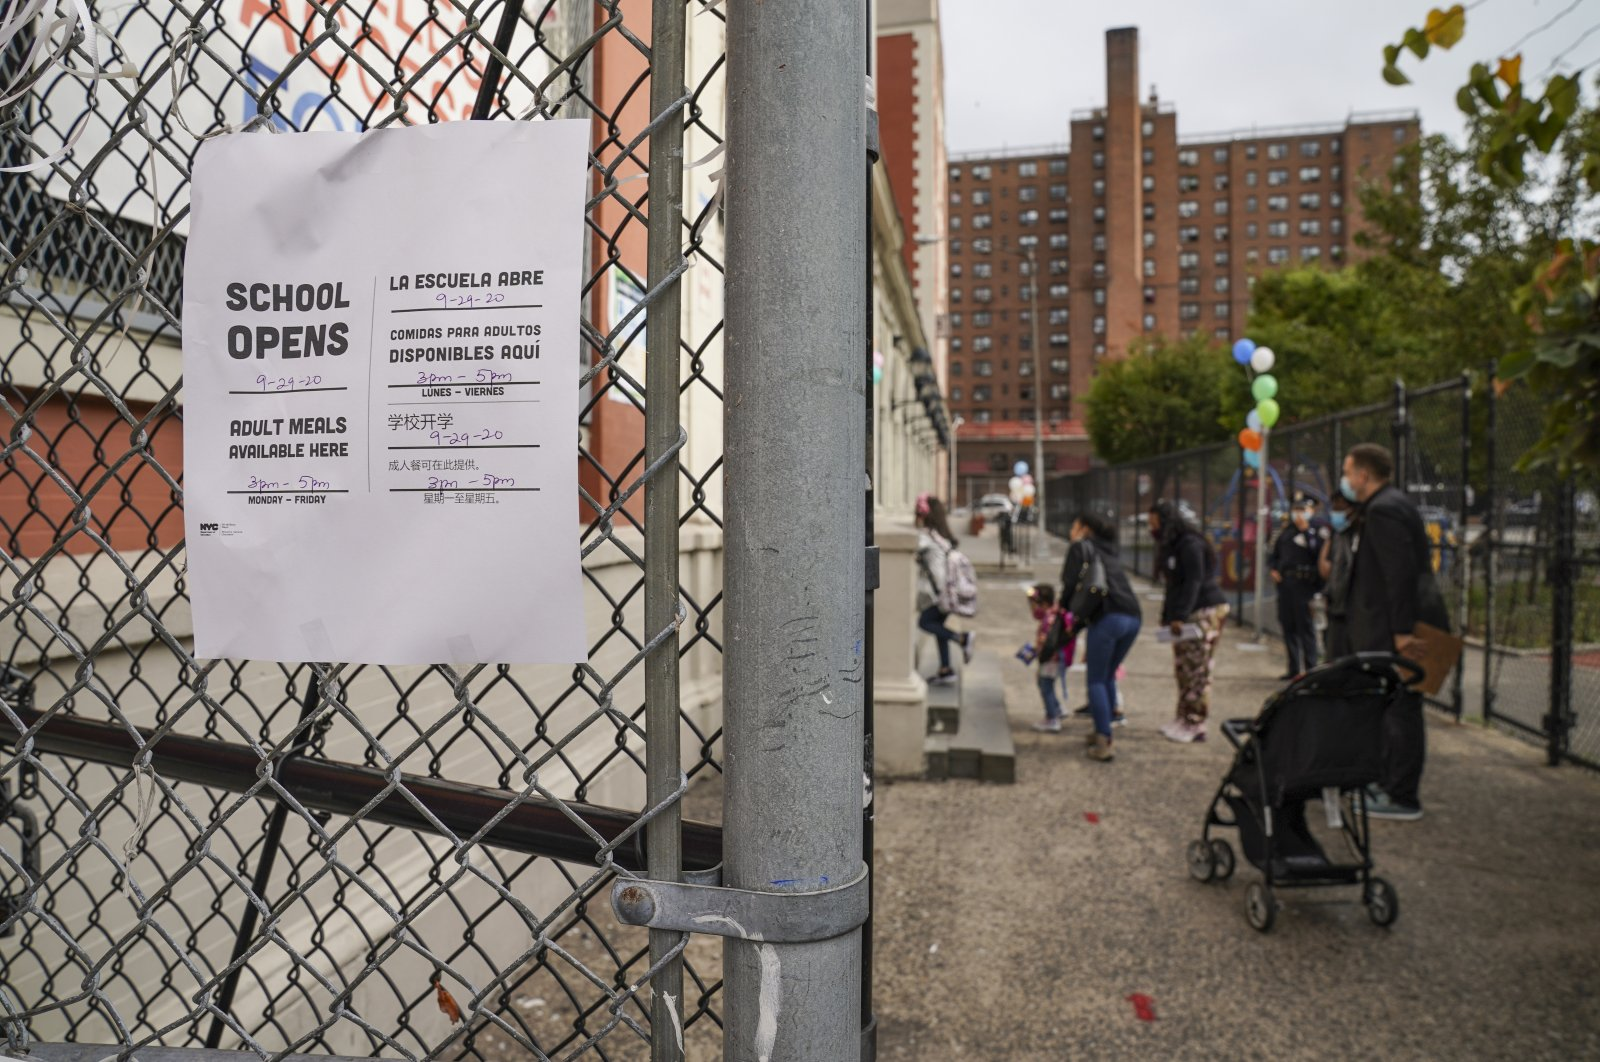 Students arrive for in-person classes outside the Public School 188 The Island School, in the Manhattan borough of New York, U.S., Sept. 29, 2020. (AP Photo)